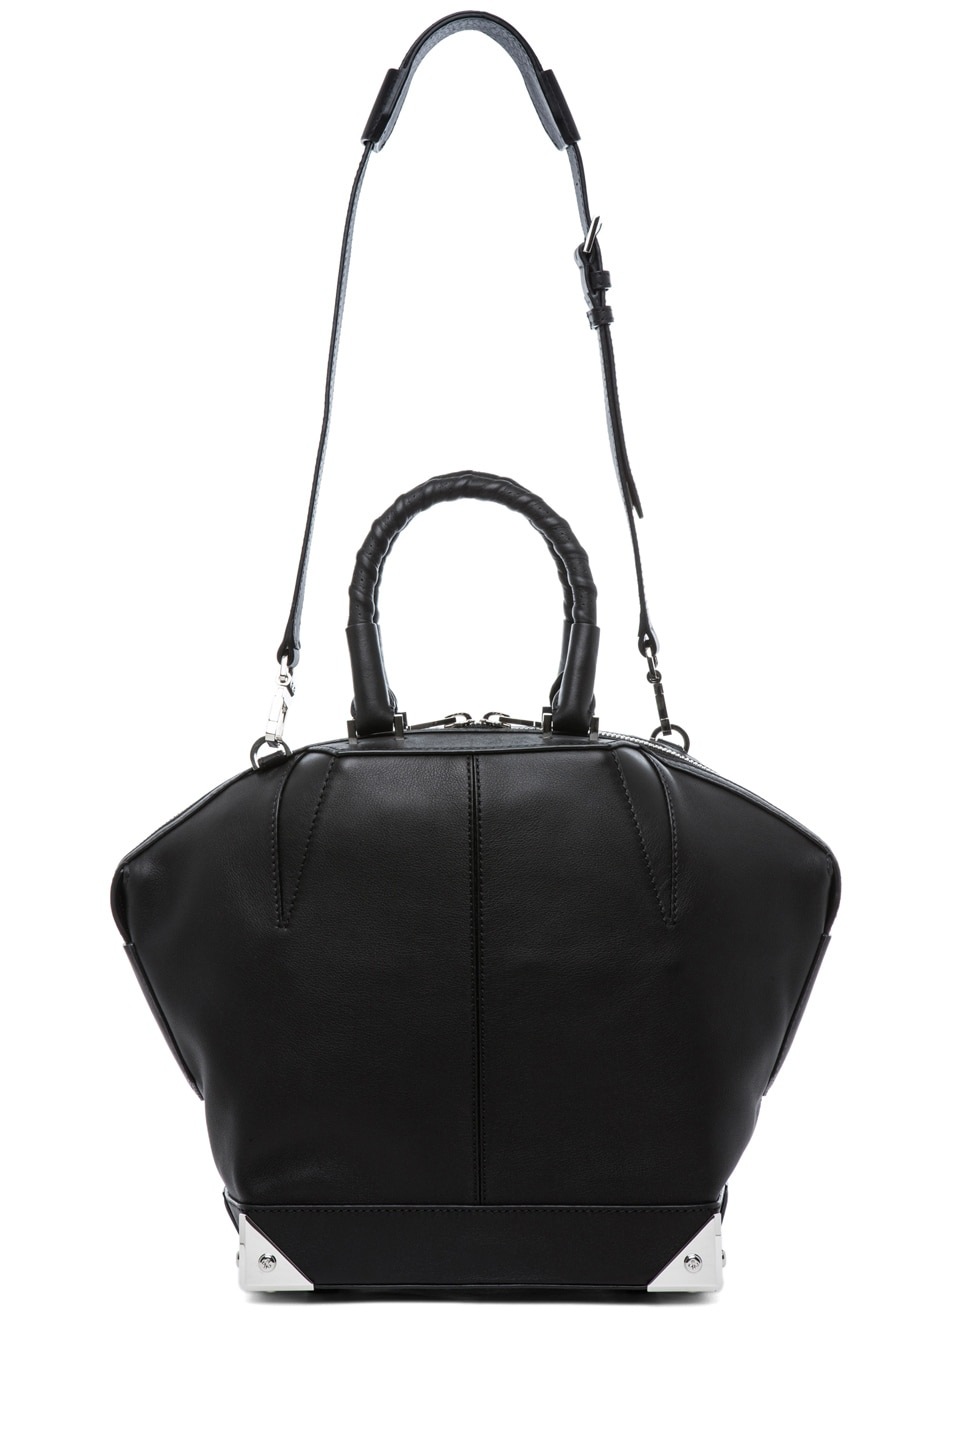 Image 5 of Alexander Wang Small Emilie Satchel with Bike Handle in Black